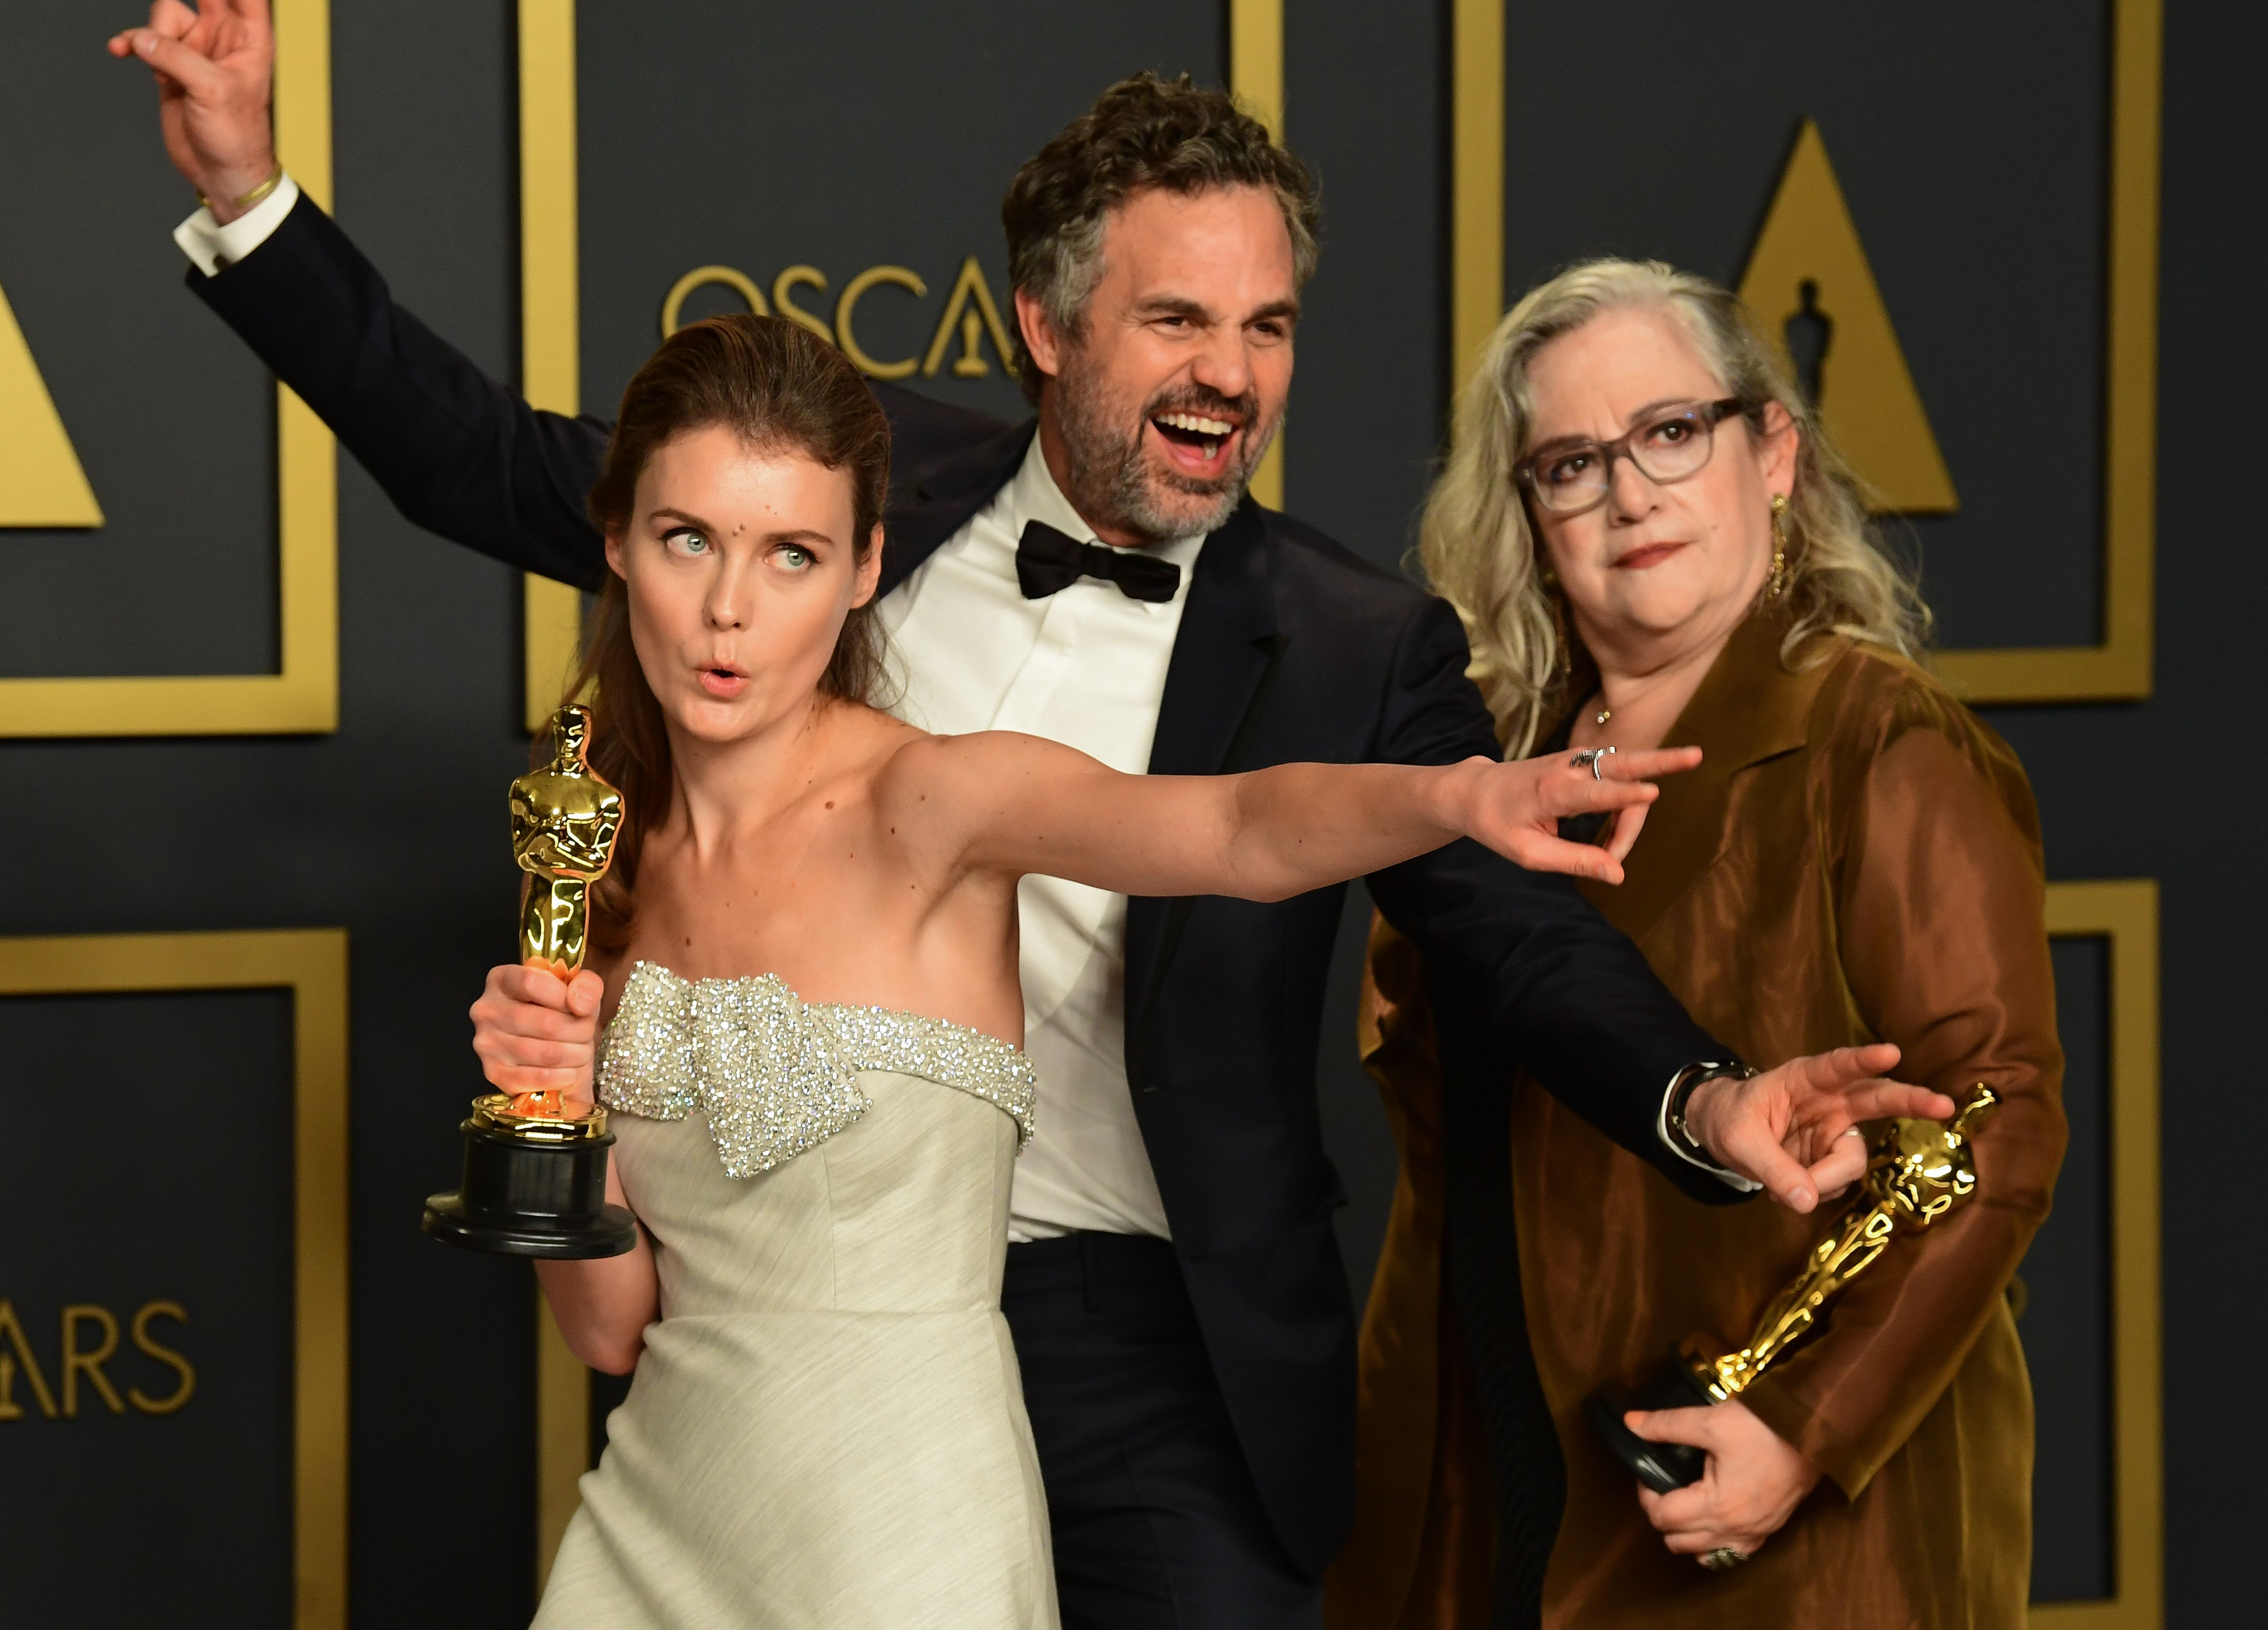 """US filmmaker Carol Dysinger (R) and director Elena Andreicheva (L) poses in the press room with the Oscar for Best Short Subject Documentary for """"Learning to Skateboard in a Warzone (If You're a Girl)"""" along with US actor Mark Ruffalo during the 92nd Oscars at the Dolby Theater in Hollywood, California on February 9, 2020. (Photo by FREDERIC J. BROWN / AFP) (Photo by FREDERIC J. BROWN/AFP via Getty Images)"""